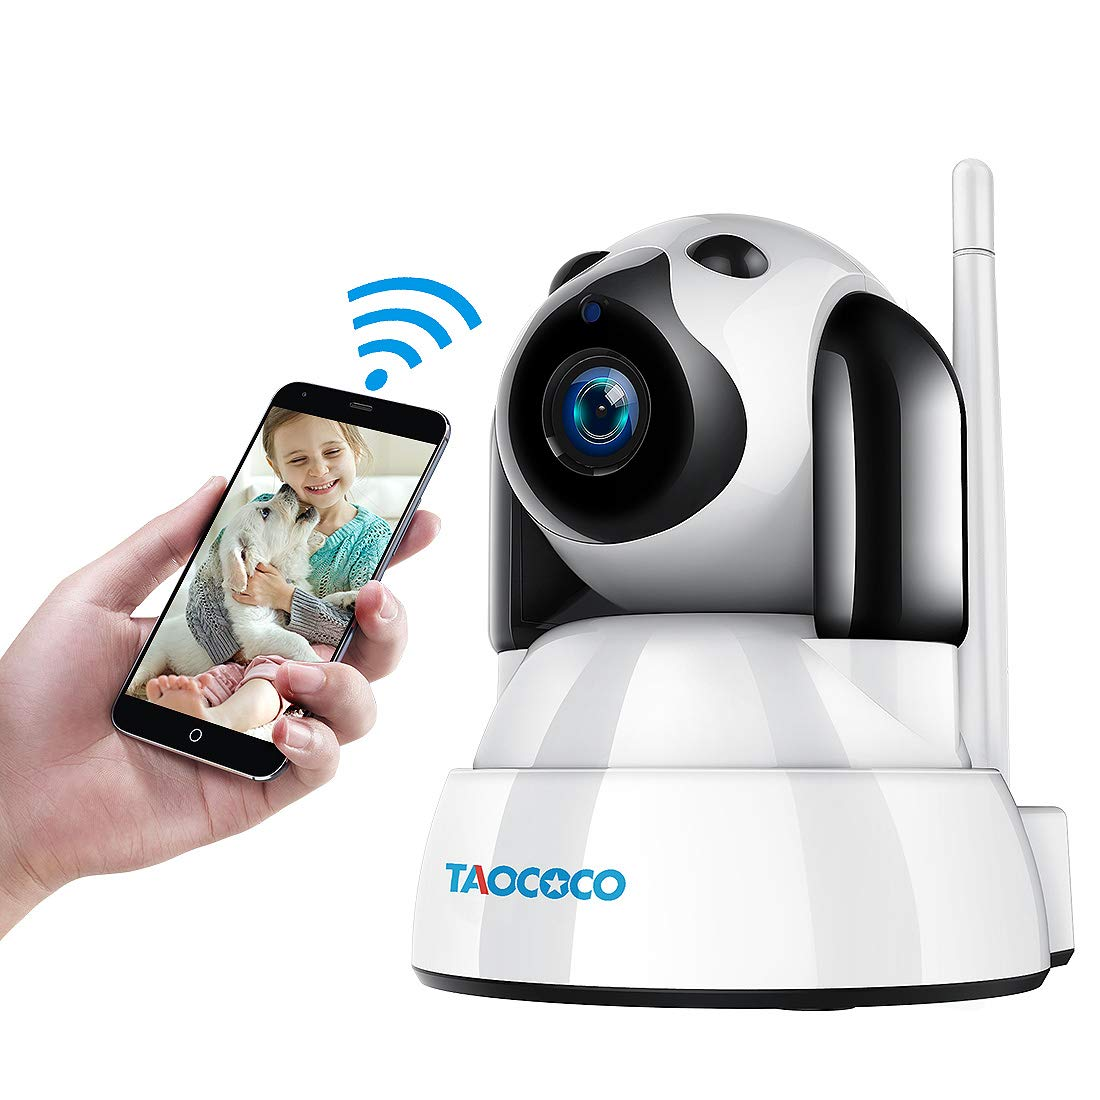 TAOCOCO Dog Pet Camera, Cat WiFi IP Camera, Wireless Surveillance Security Camera, Home Baby Monitor Nanny Cam with Smart Pan/Tilt/Zoom, Motion Detection, Two Way Talking, Infrared Night Vision